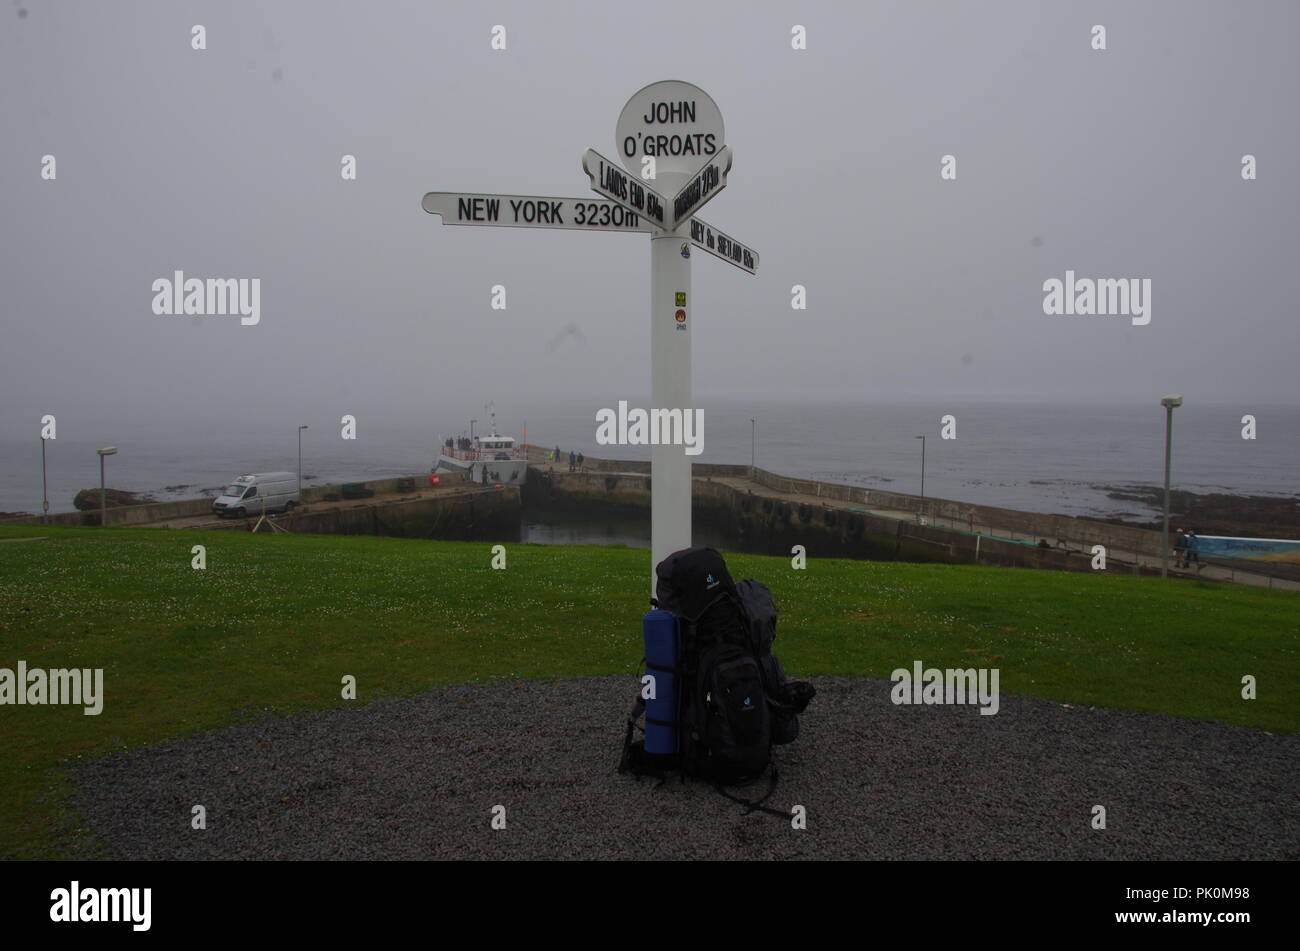 The start of a long hike free sign. John o' groats (Duncansby head) to lands end. Cornwall. End to end trail. Caithness. Highlands. Scotland. UK - Stock Image